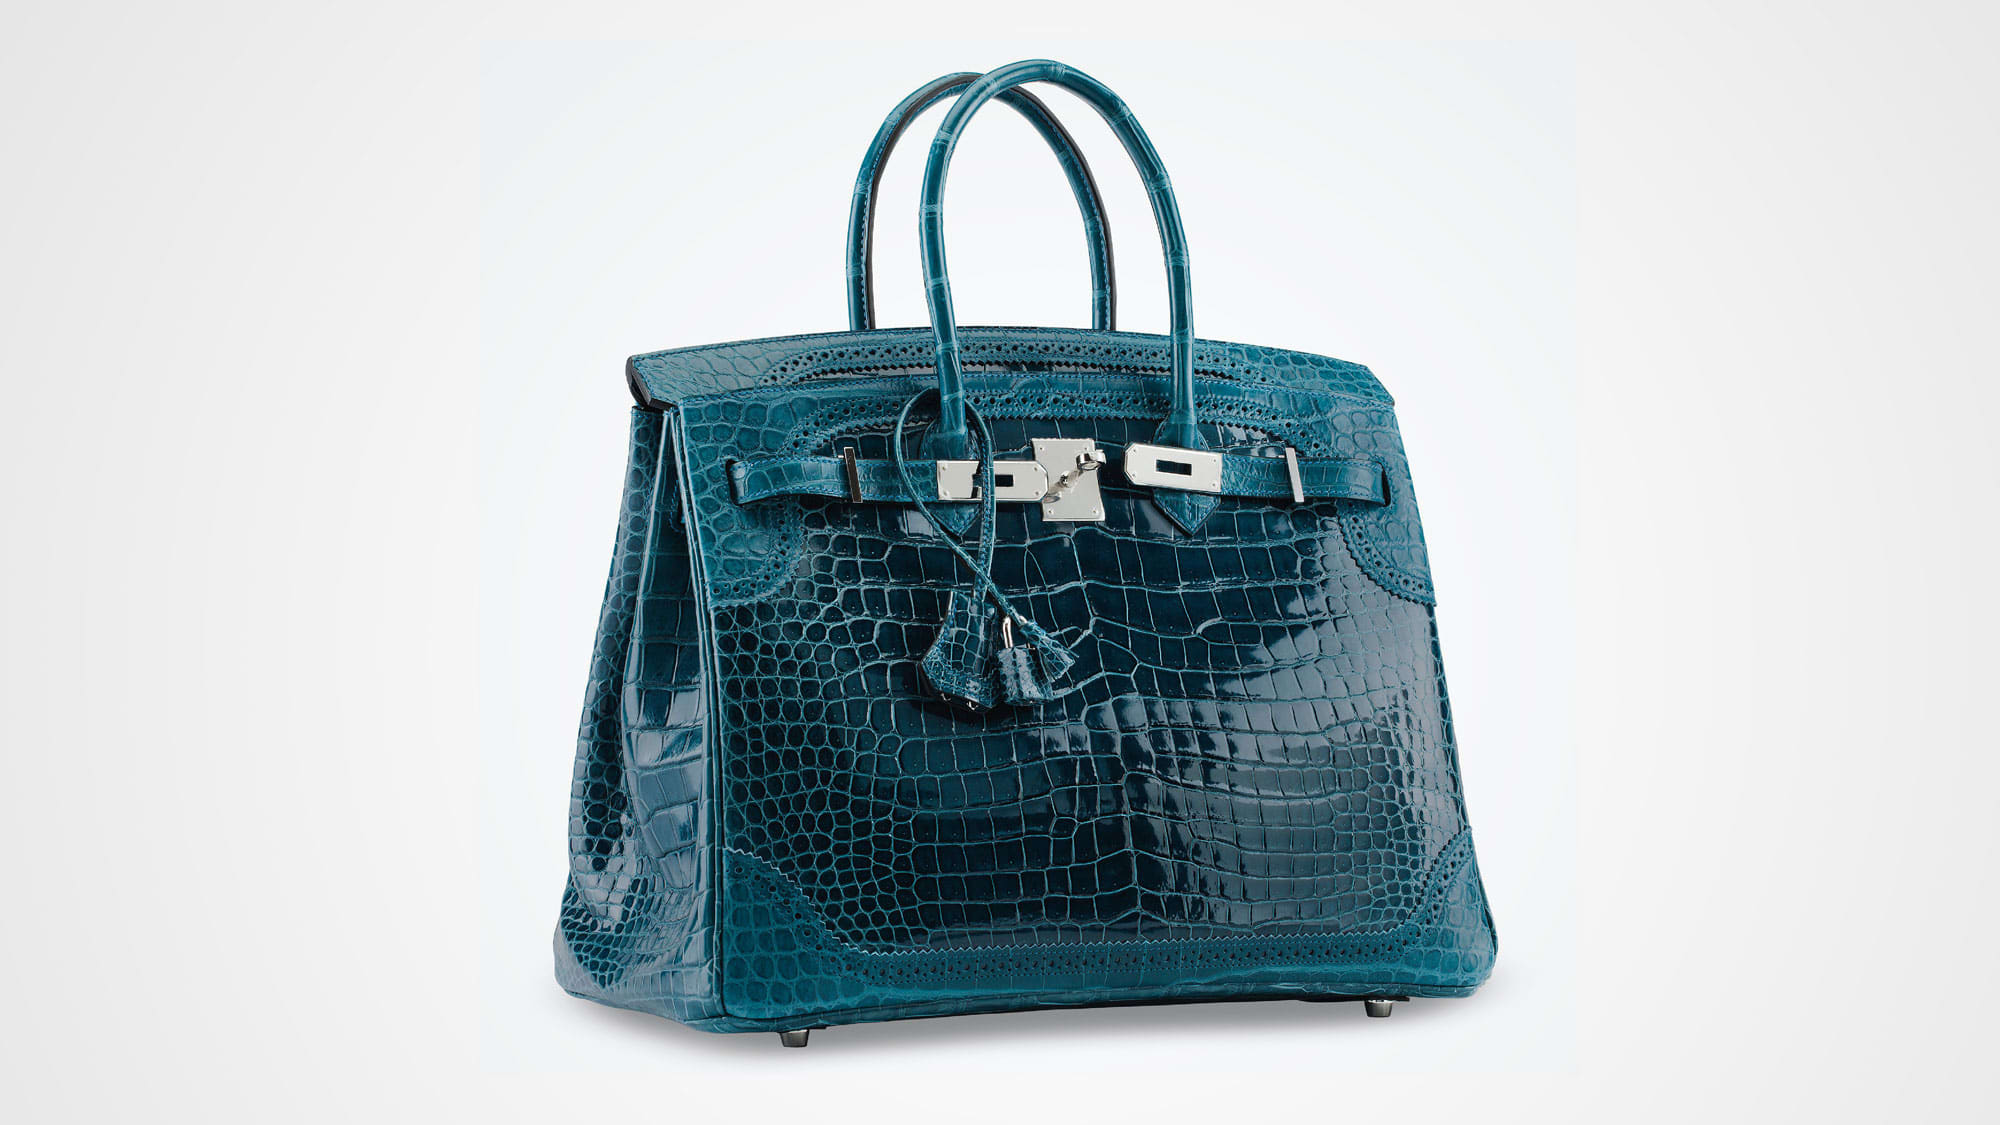 cf523d5f10c ... czech hermès birkin handbag expected to sell for over 50000 at  christies 0661f a3892